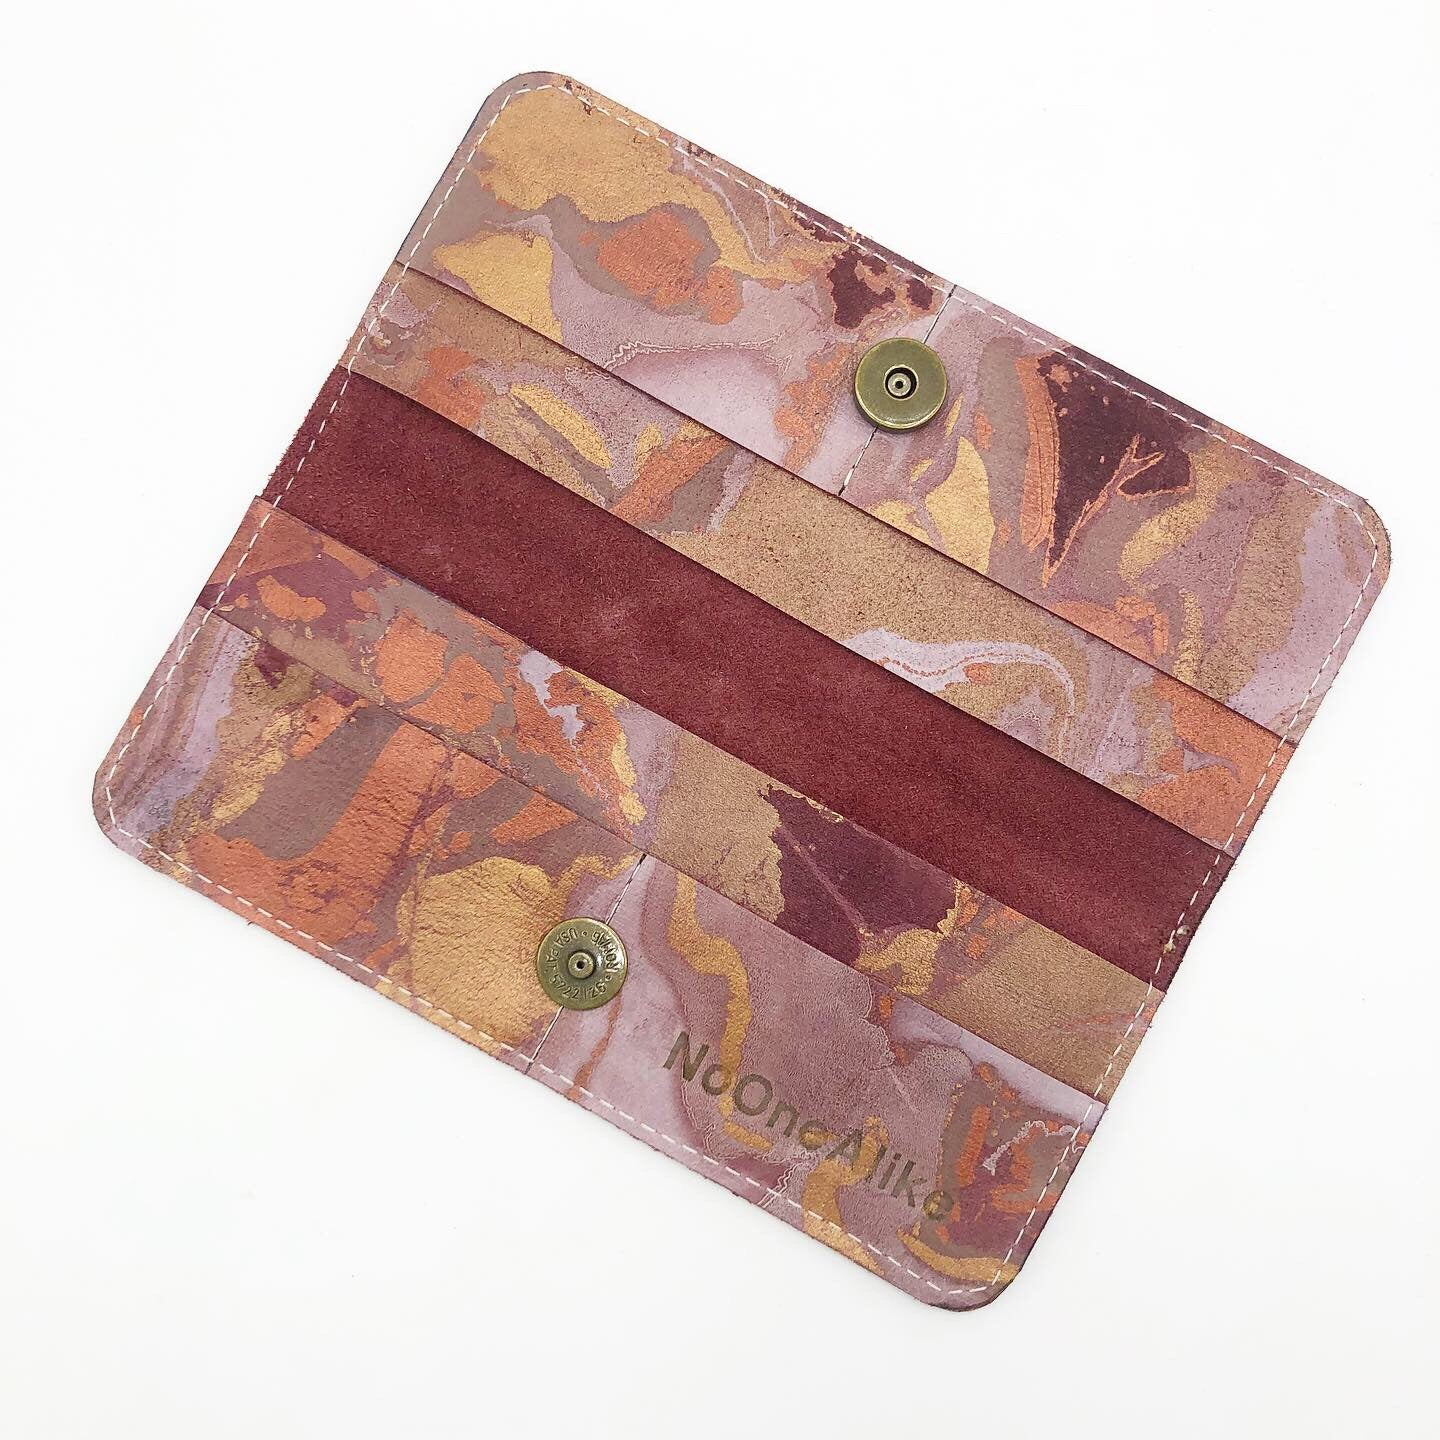 Cranberry Glow Wallet - No One Alike